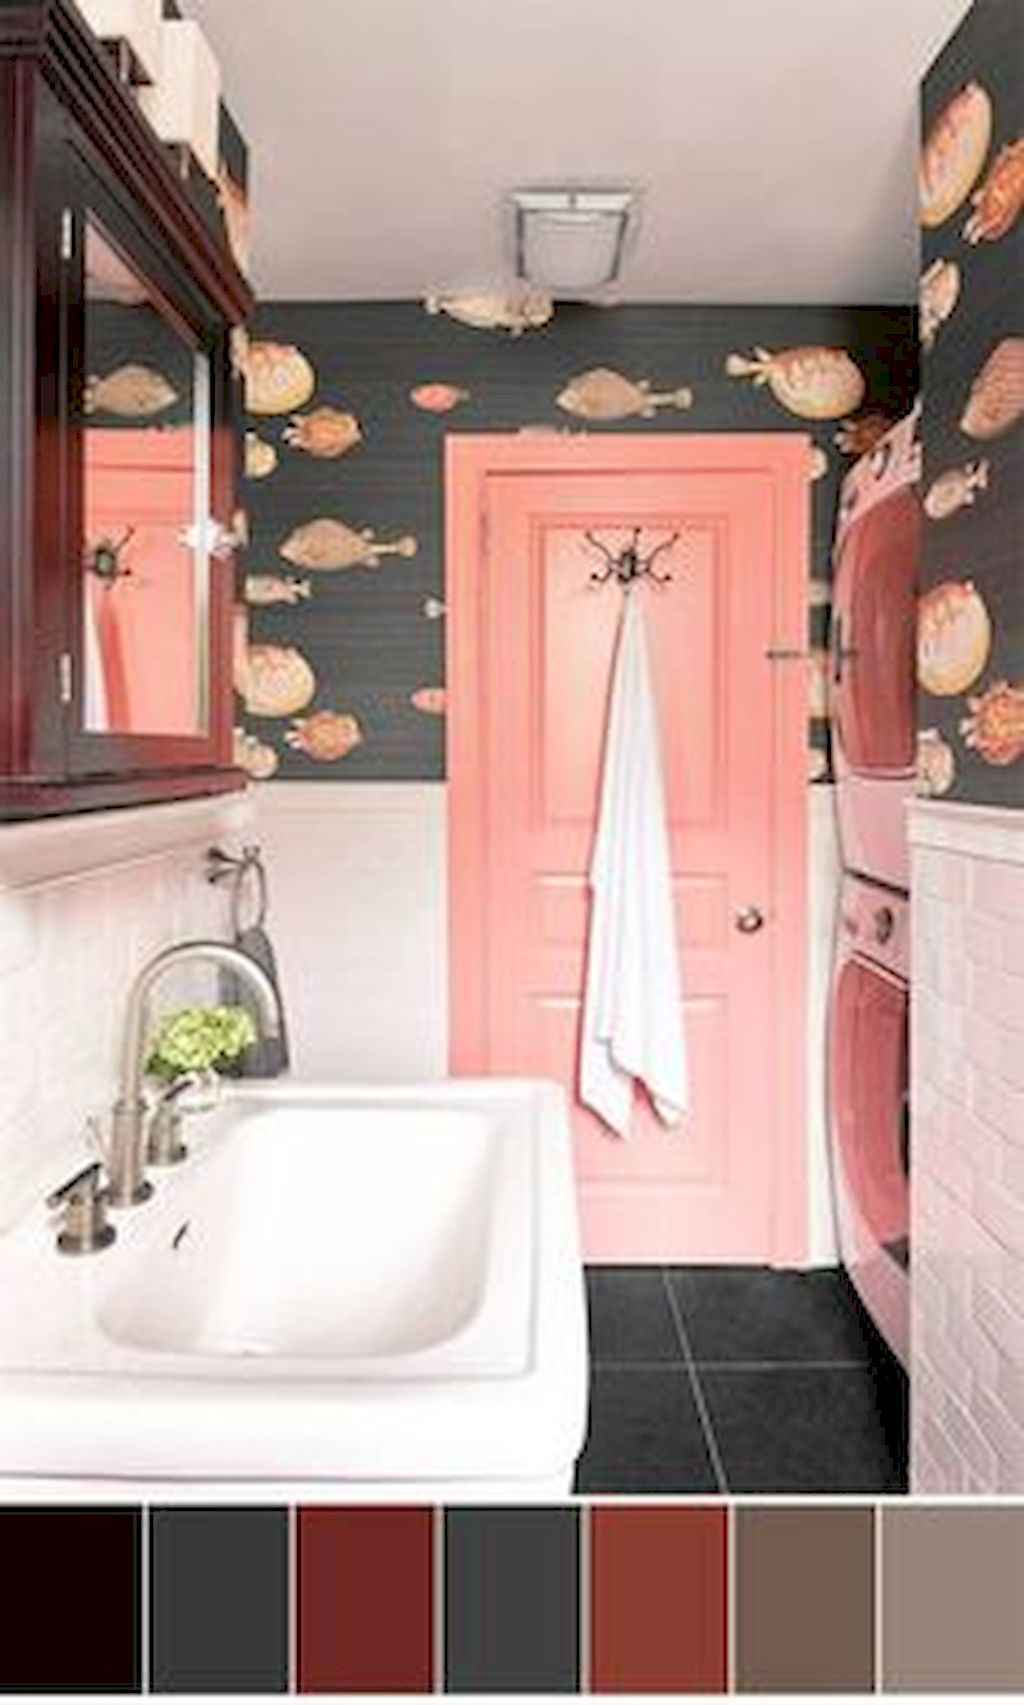 55 Cool and Relax Bathroom Decor Ideas (4)